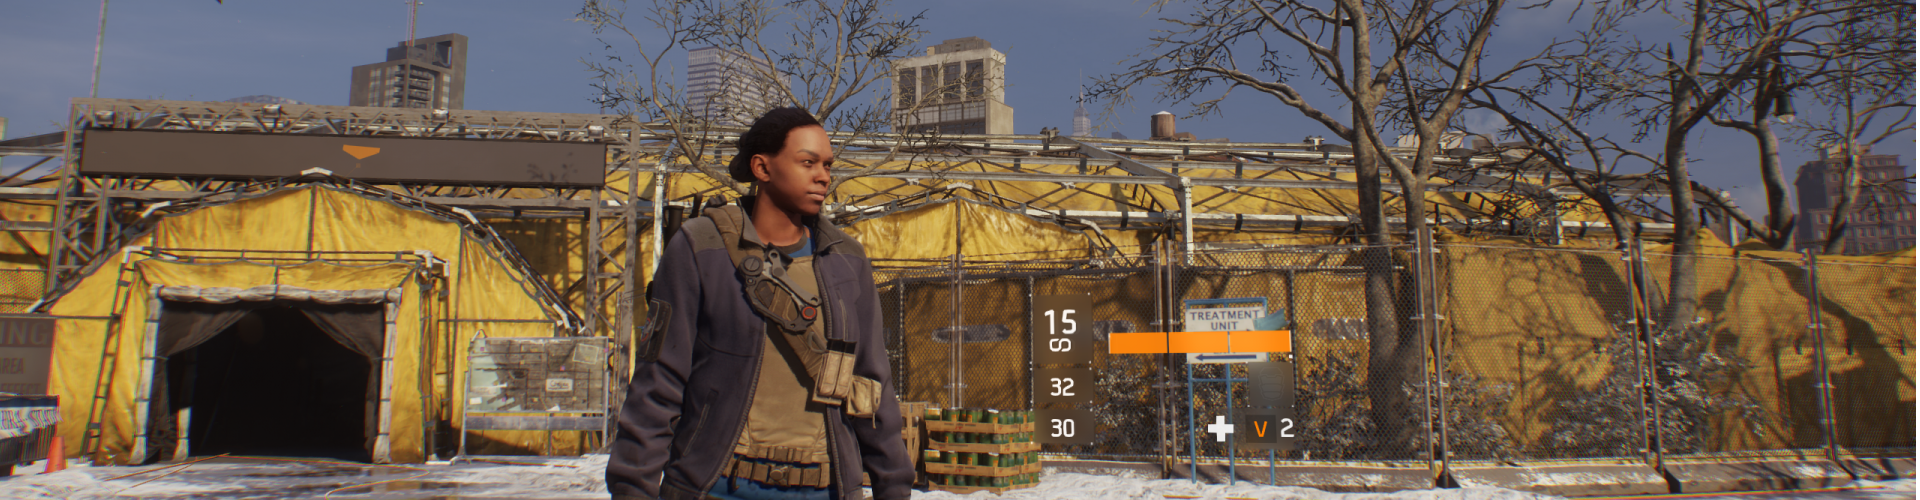 The Division PC: Beta im Benchmark-Test mit 7 Grafikkarten [Update]